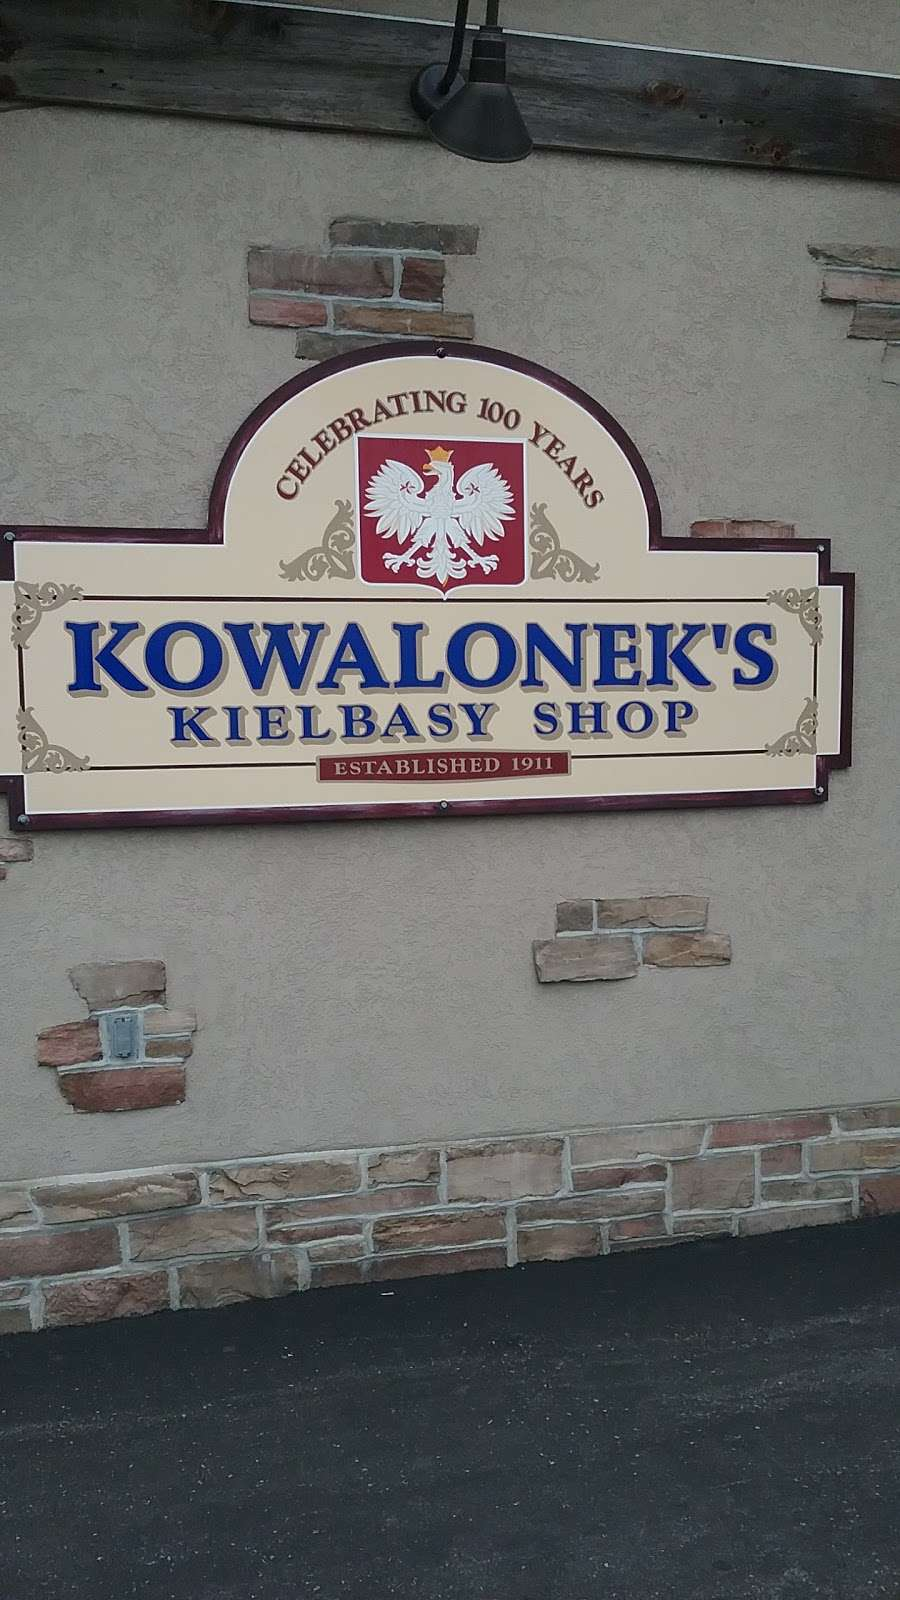 Kowaloneks Kielbasy Shop - store  | Photo 7 of 10 | Address: 332 S Main St, Shenandoah, PA 17976, USA | Phone: (570) 462-1263